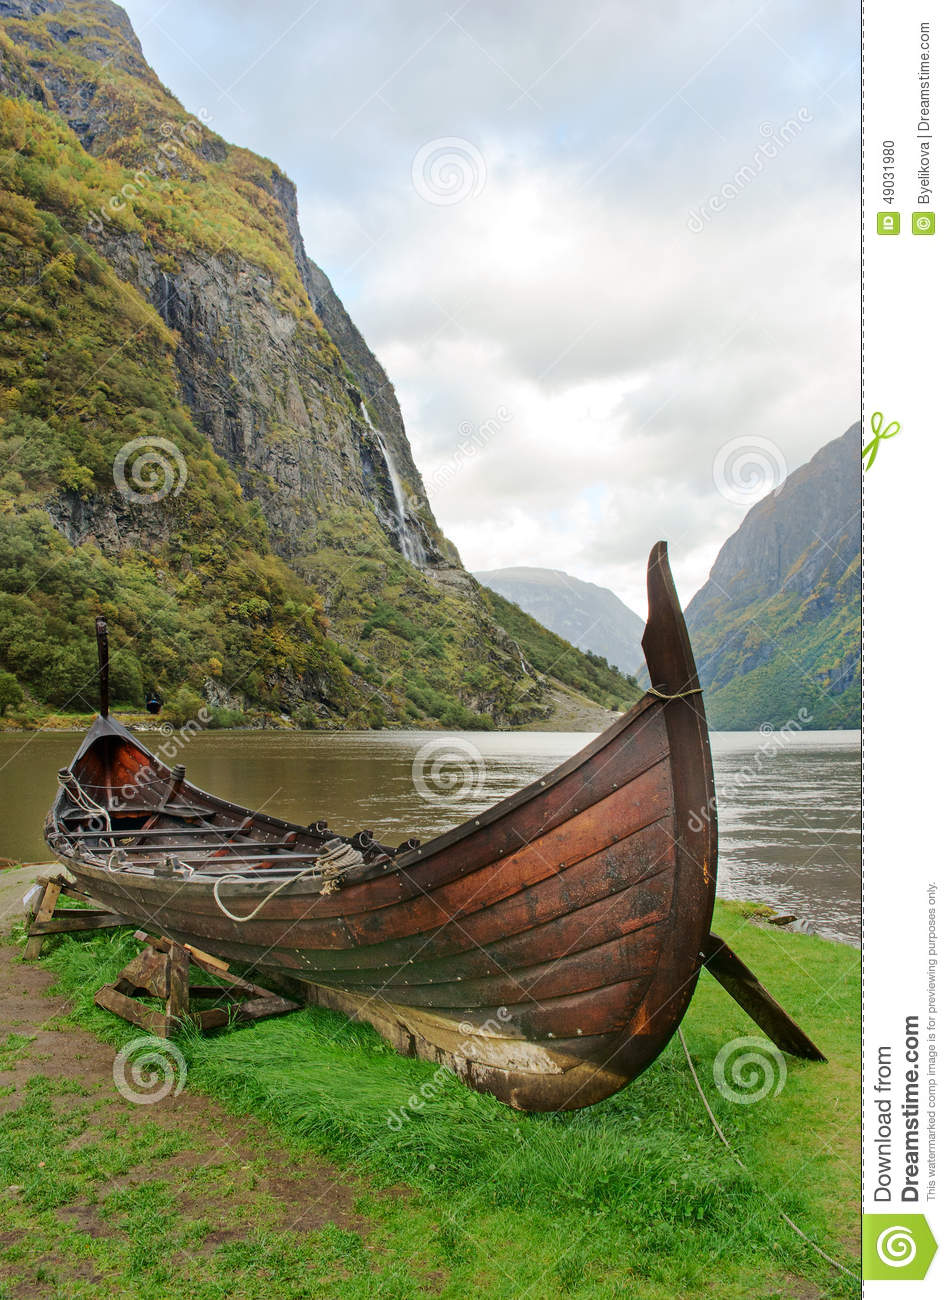 Old Viking Boat In Norway Stock Photo - Image: 49031980